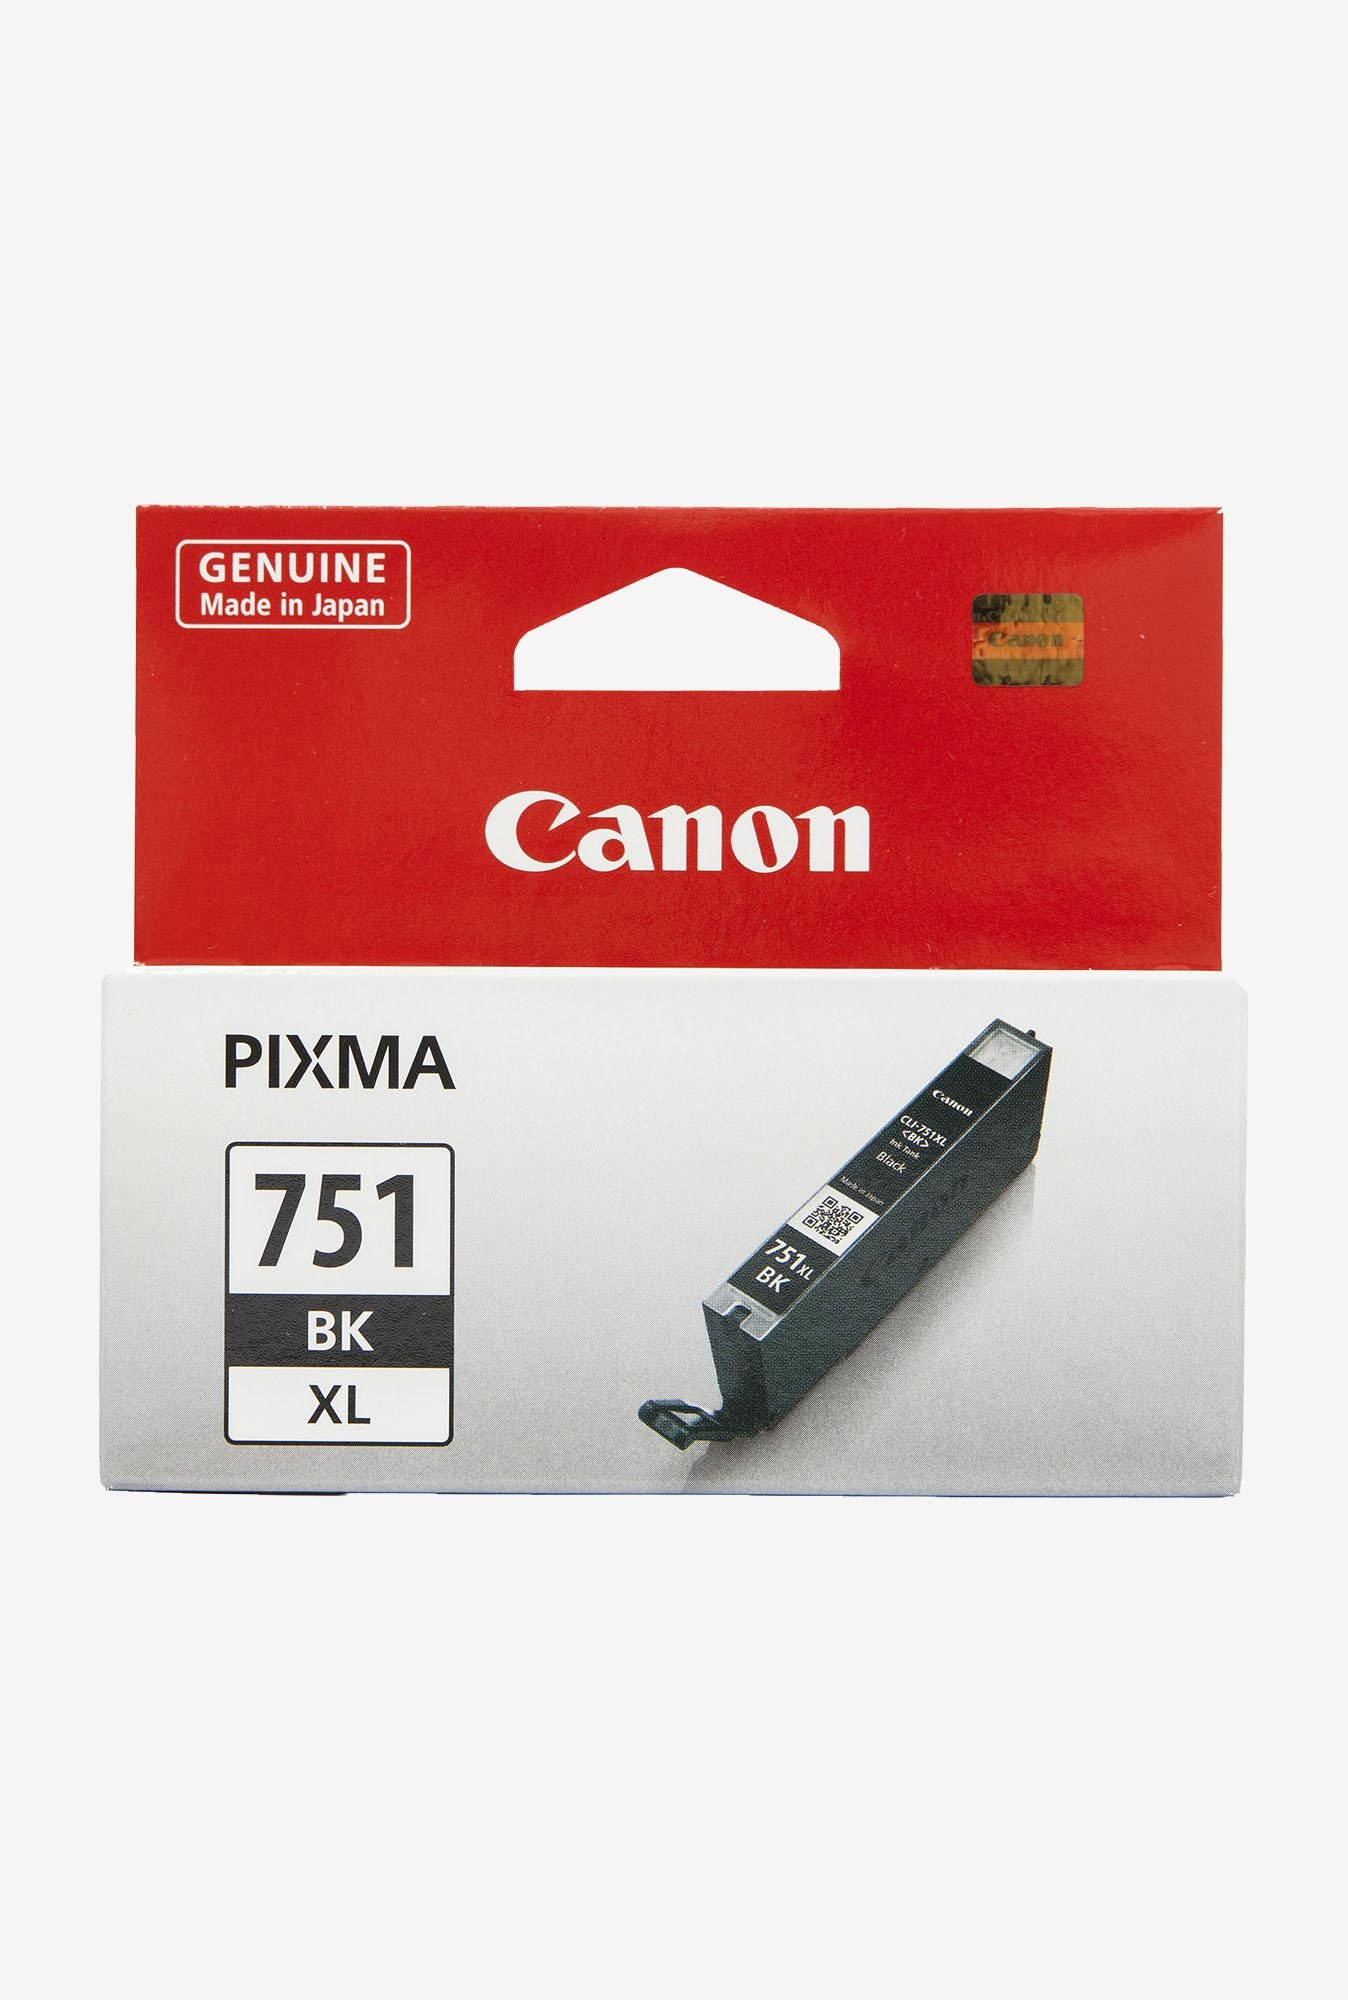 Tatacliq: CANON CLI-751XL BK Cartridge Black @ Rs.149/-